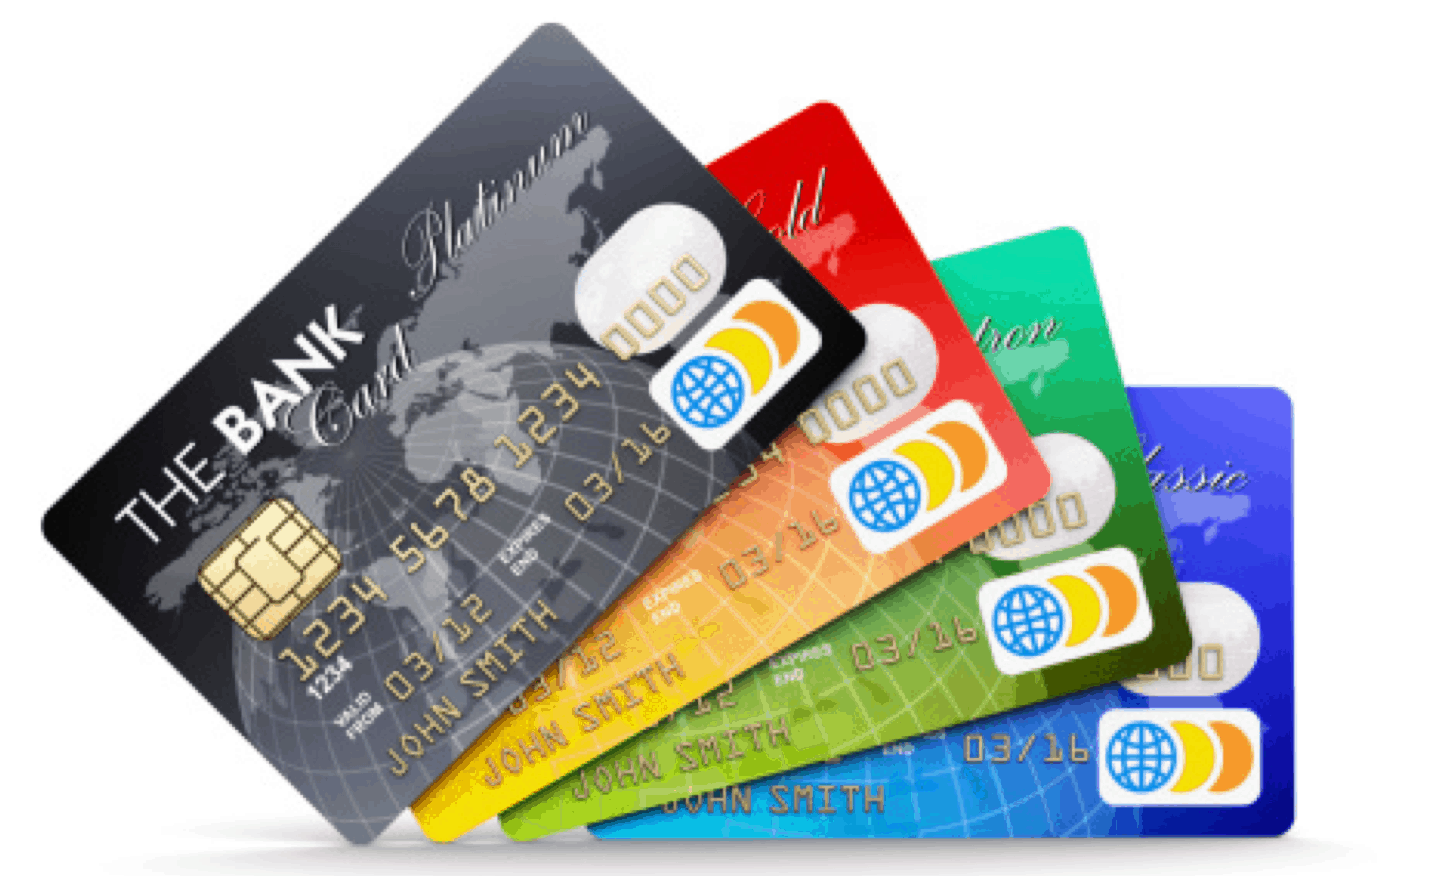 Fixed Interest Credit Cards